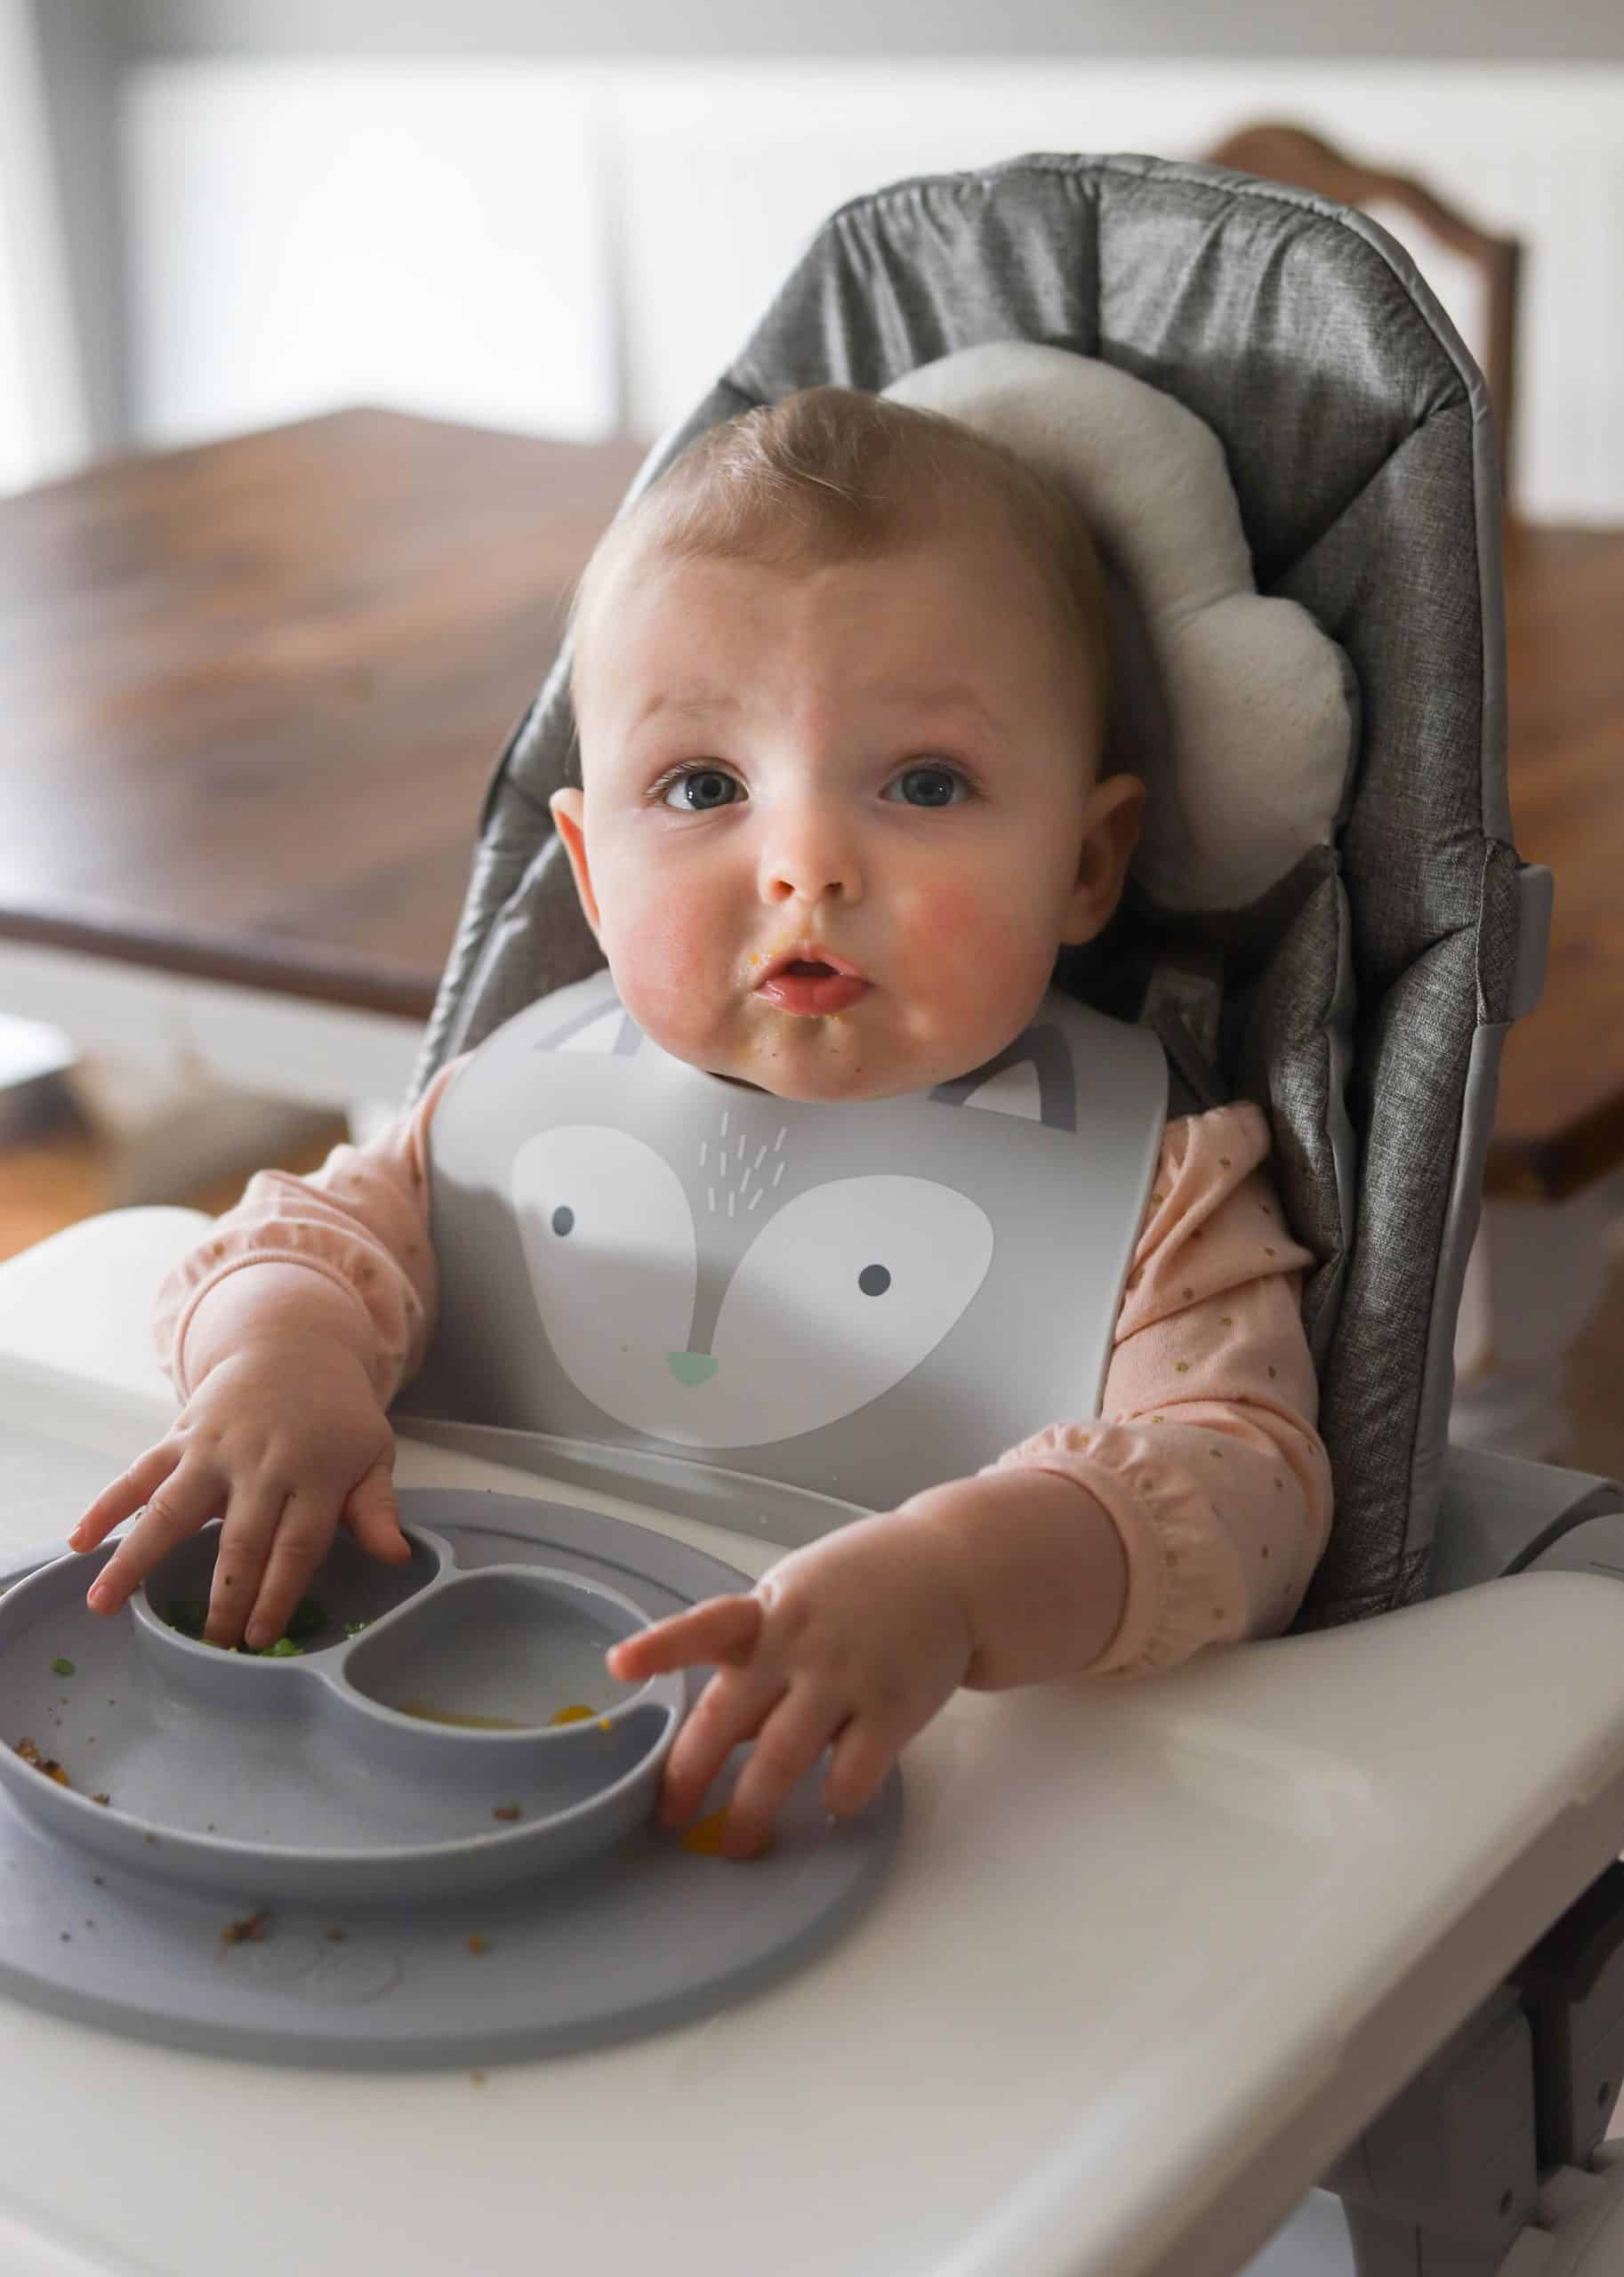 A child in a bib at a high chair eating solid foods.